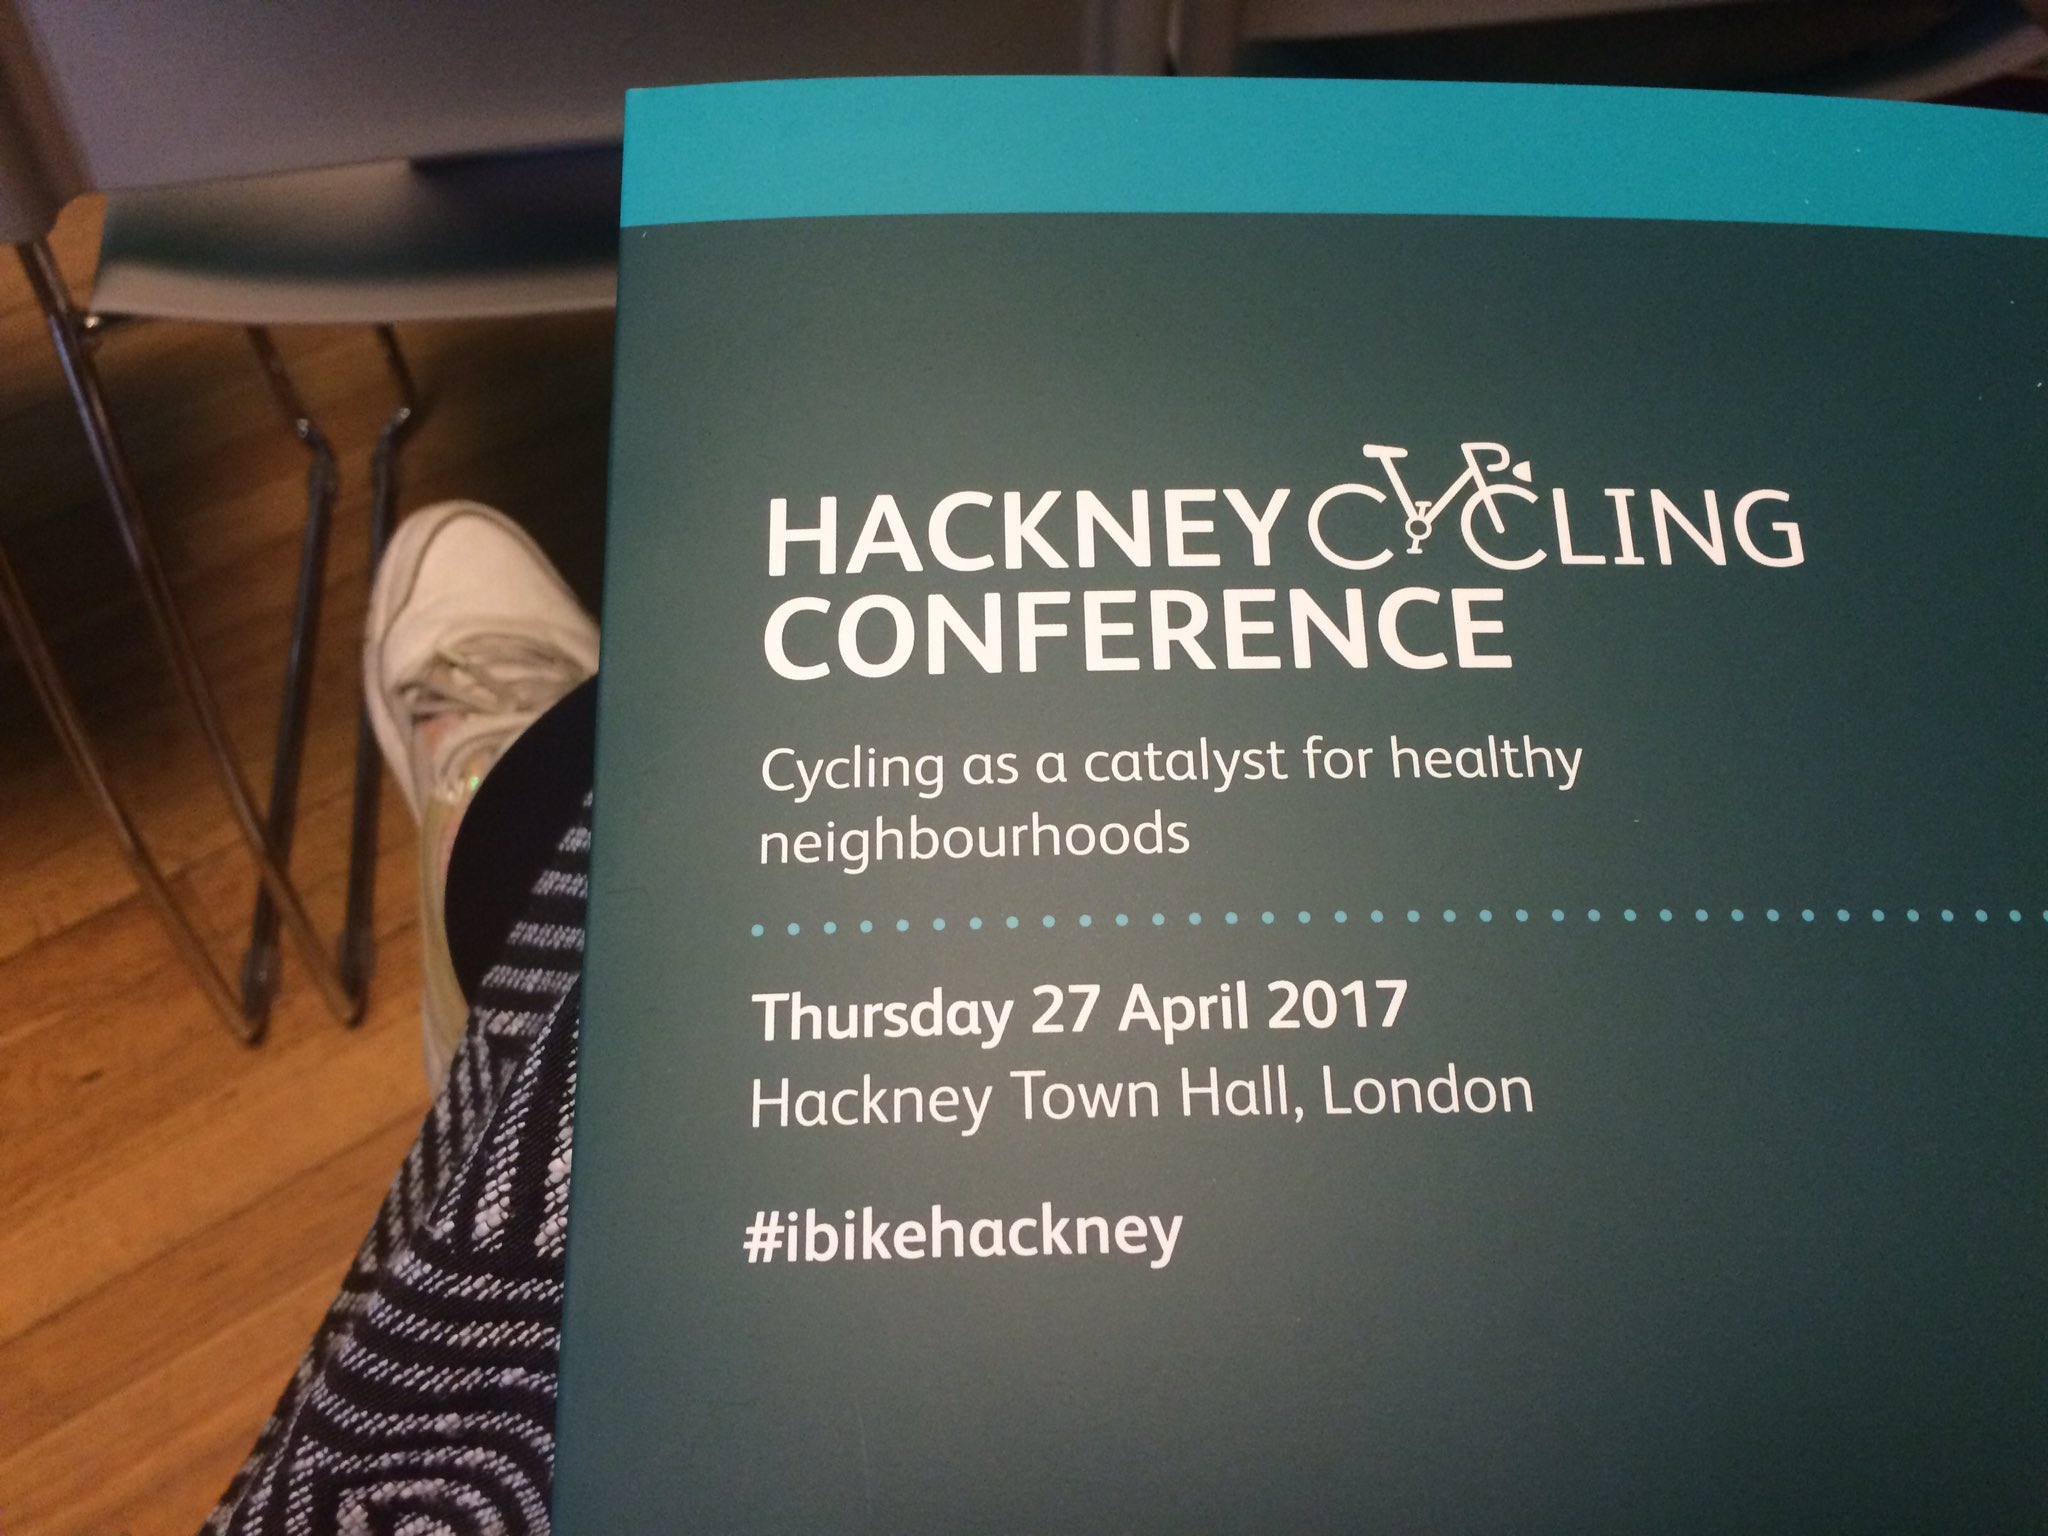 It's this time of the year again! Hackney Cycling Conference is a go! #ibikehackney https://t.co/IThlBV59EJ